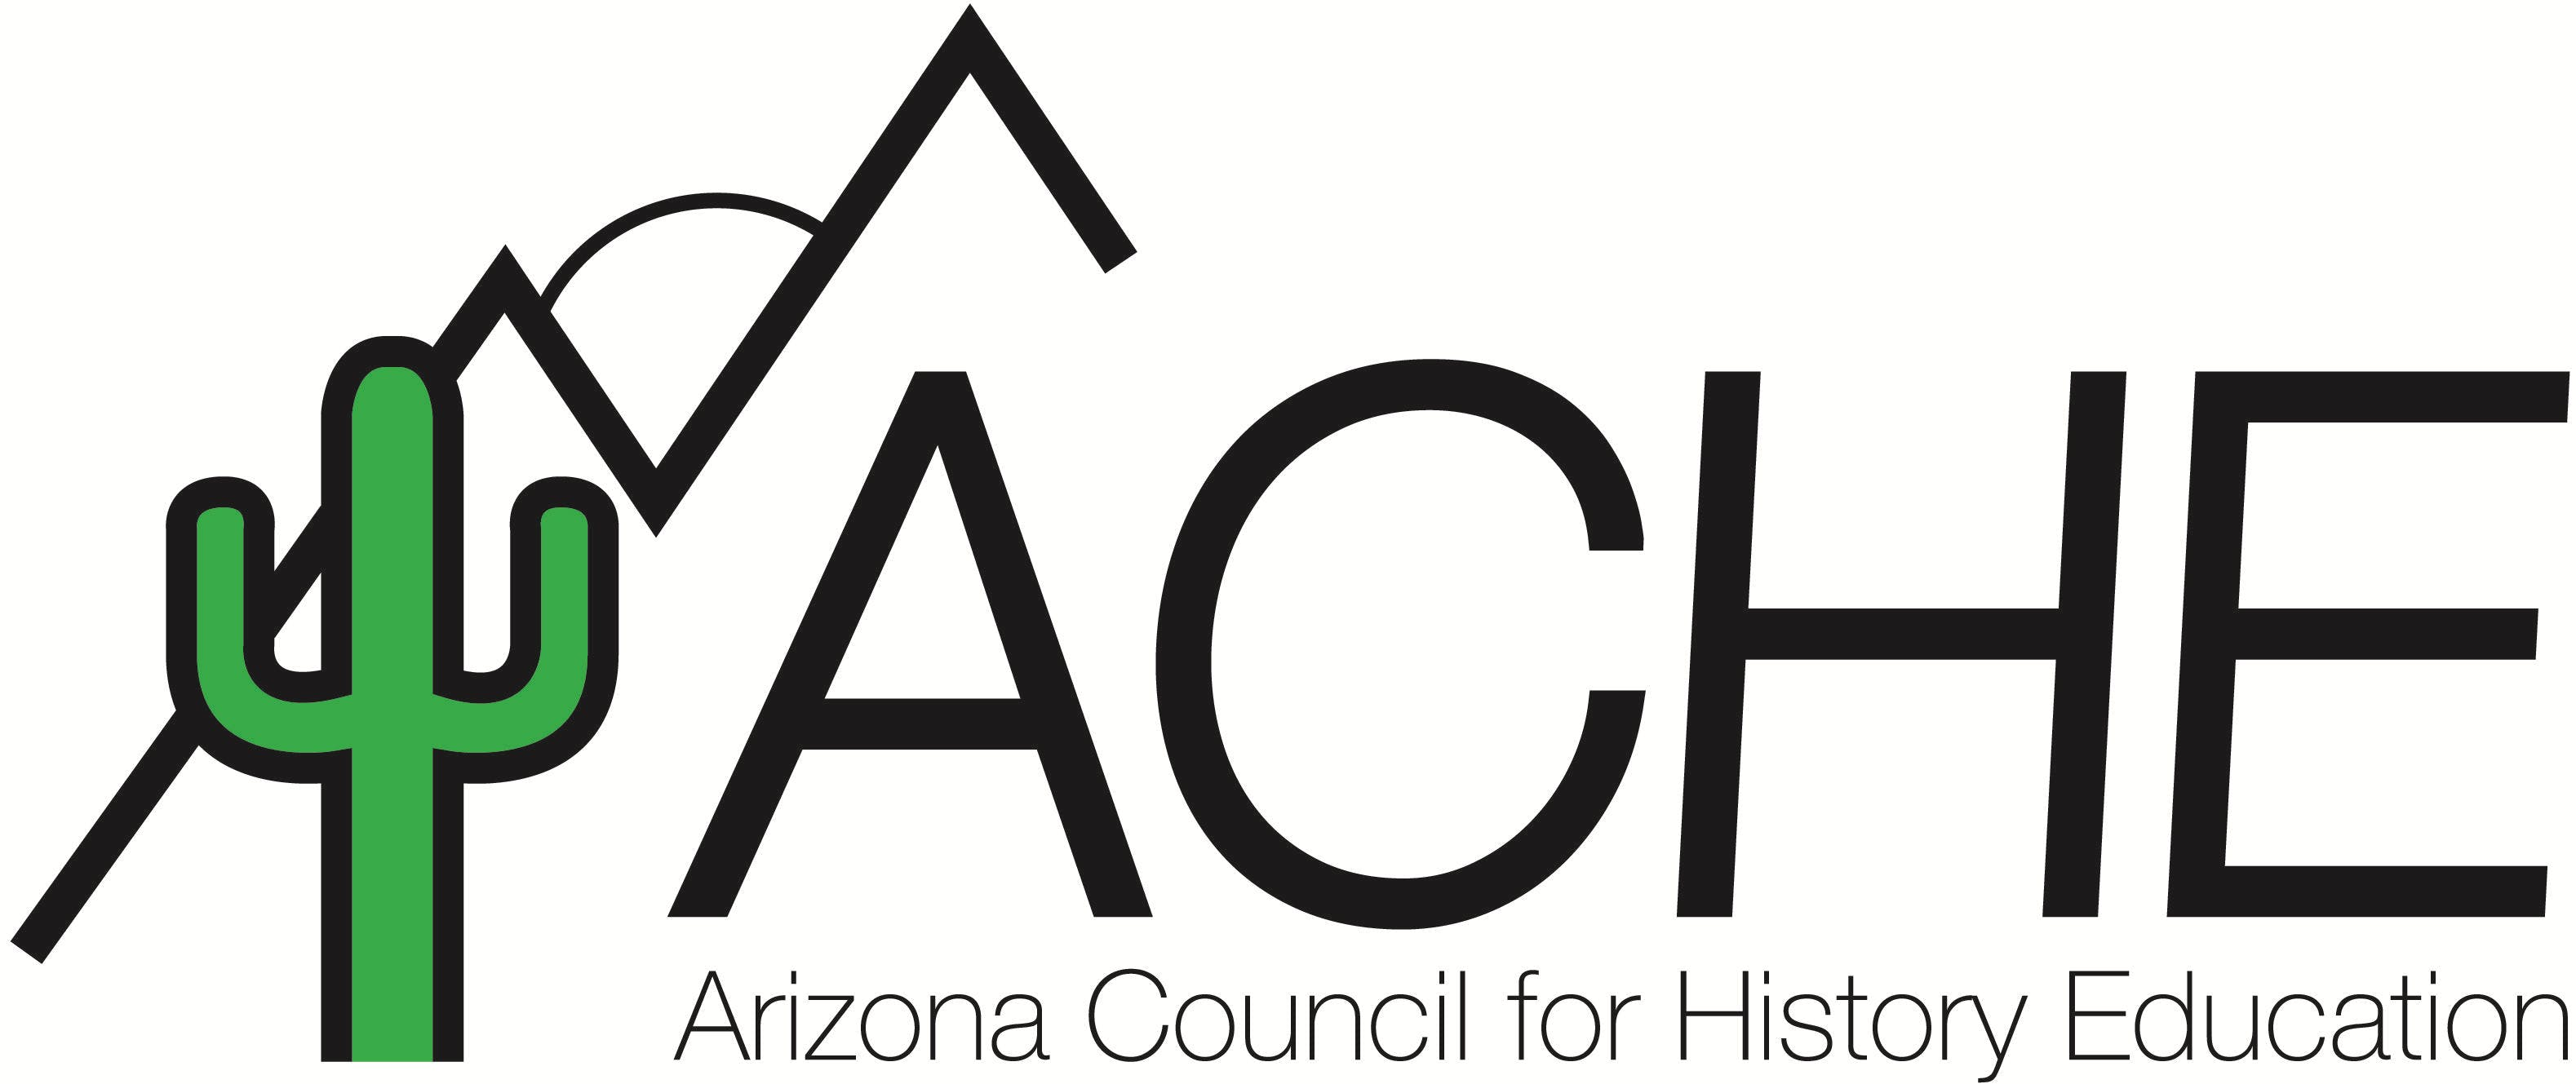 2019 Arizona Council for History Education Conference